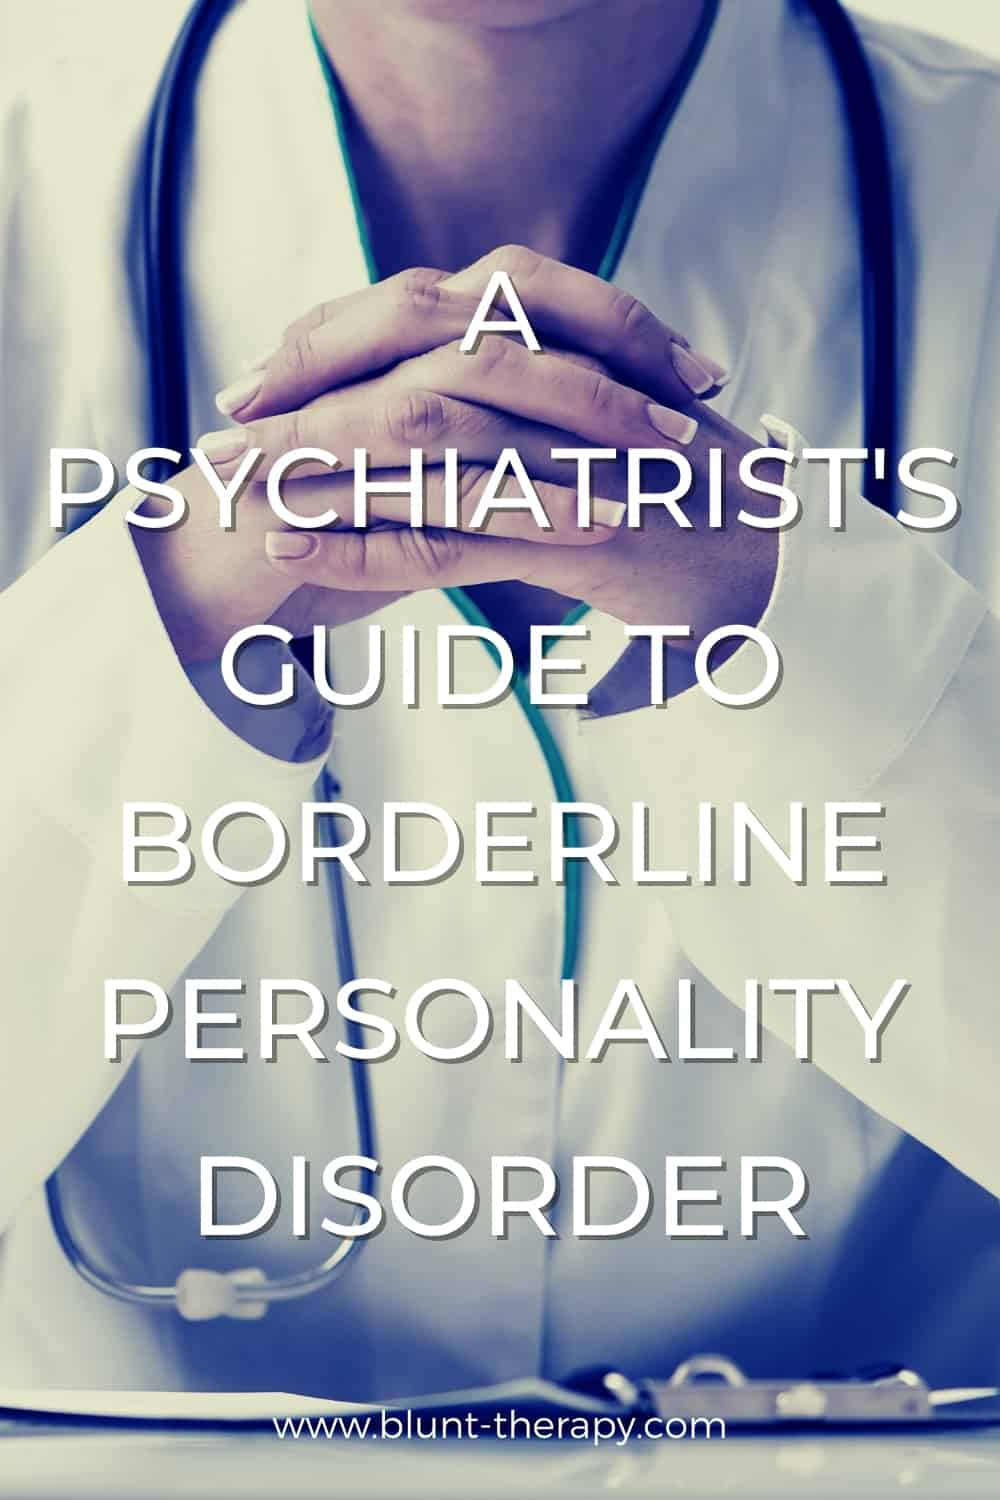 A Psychiatrist's Guide To Borderline Personality Disorder